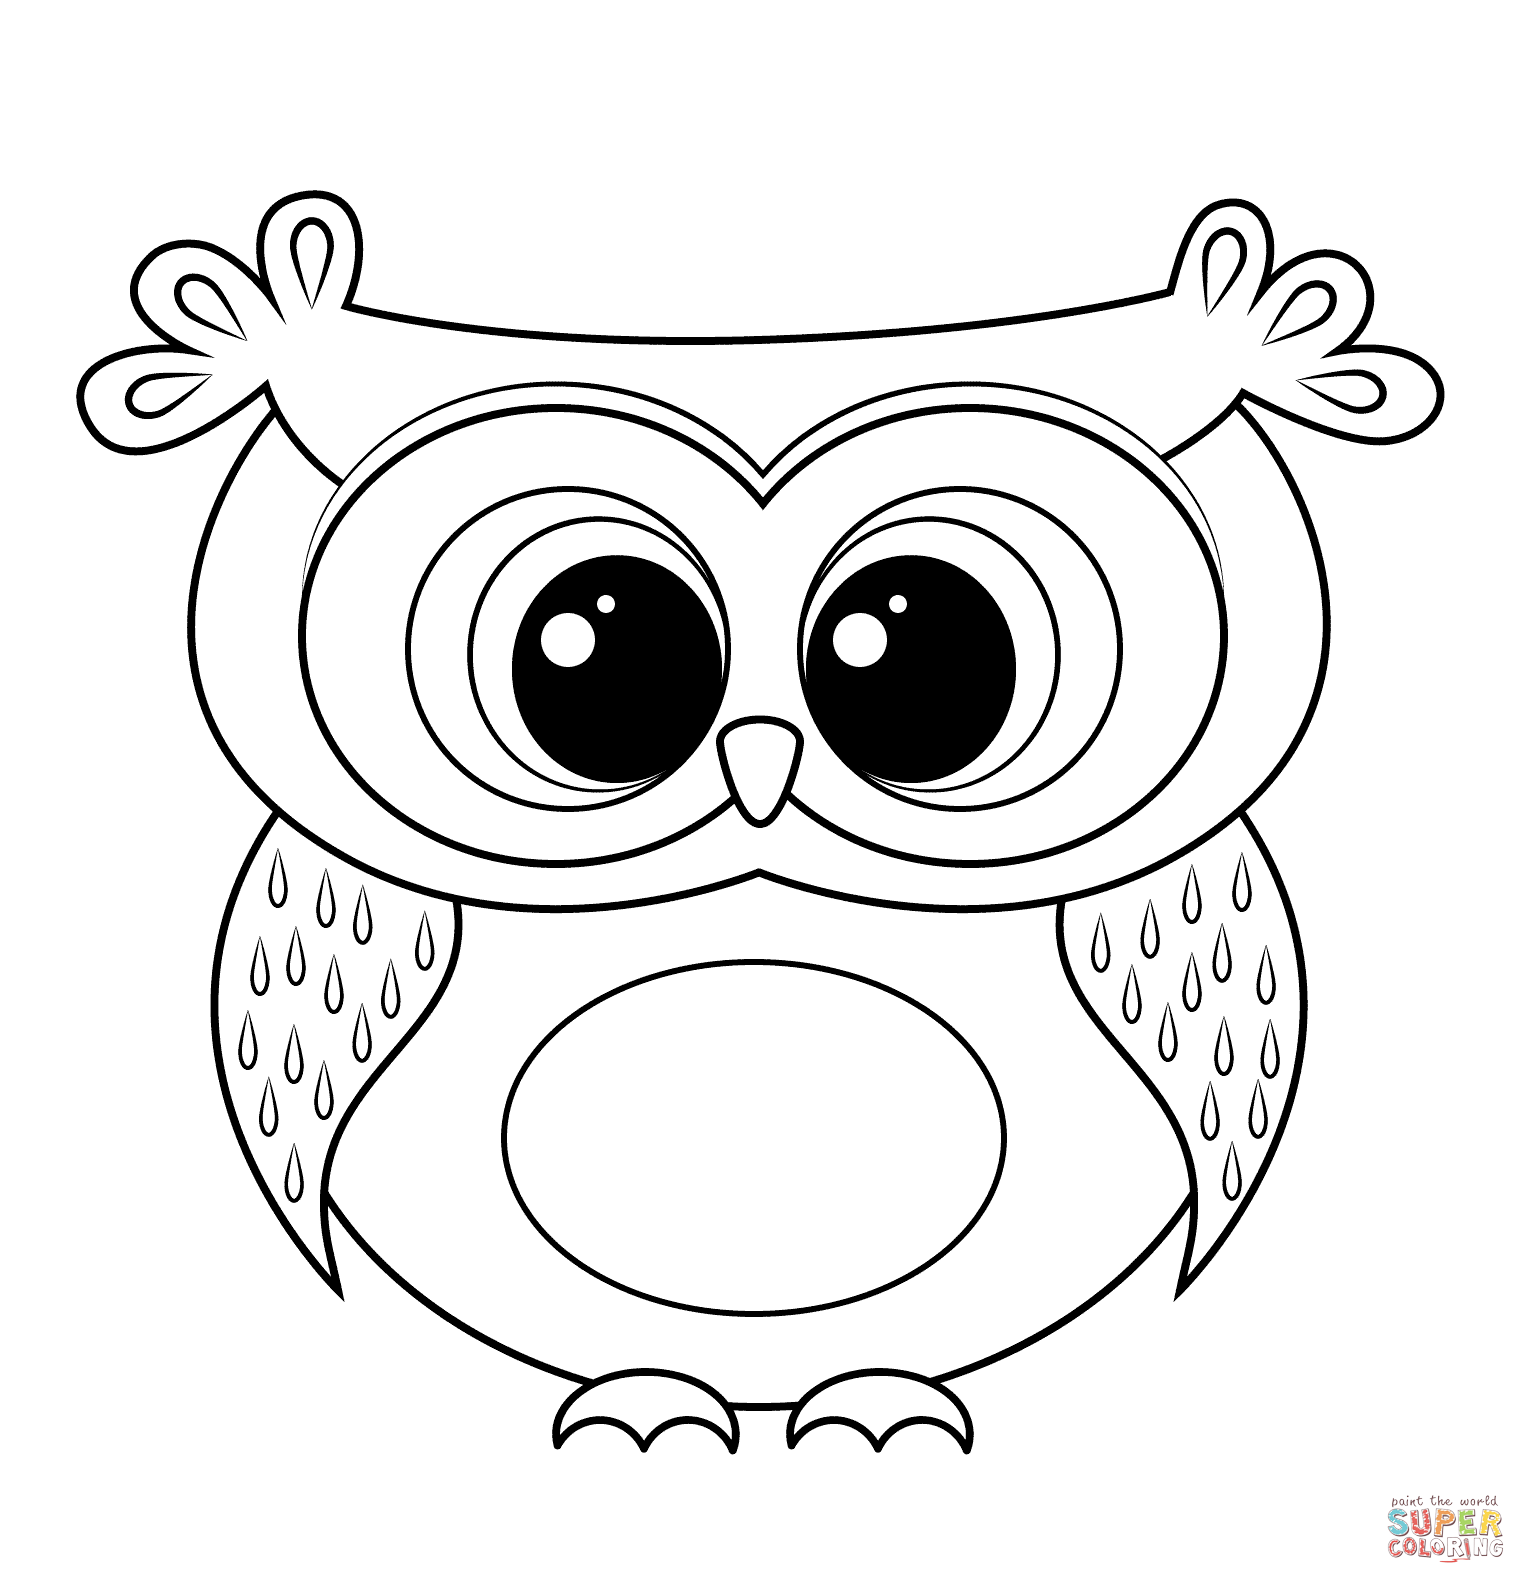 colouring picture of owl nocturnal bird owl coloring pages 34 pictures cartoon clip picture of colouring owl